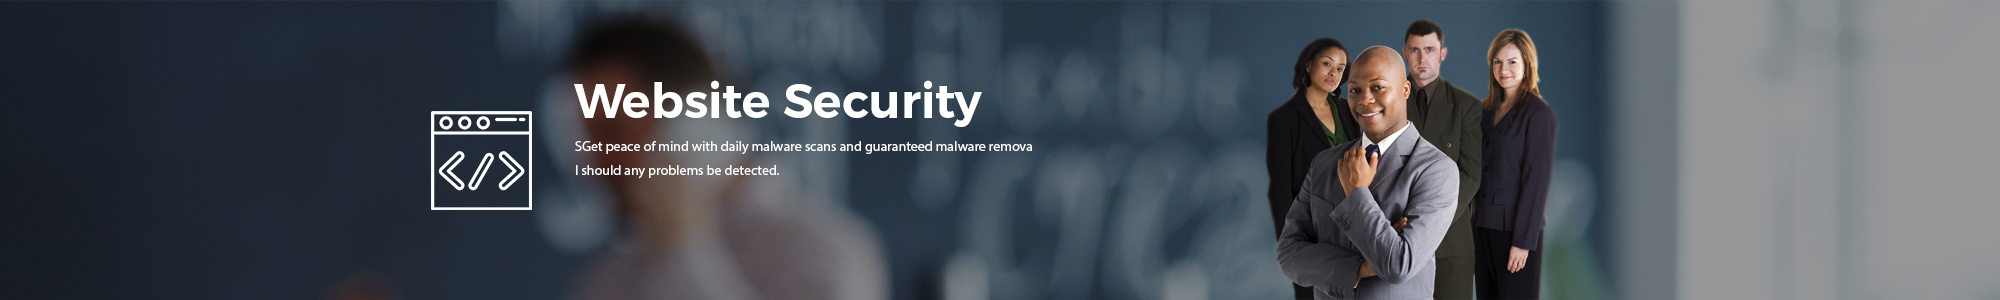 website security secure your website